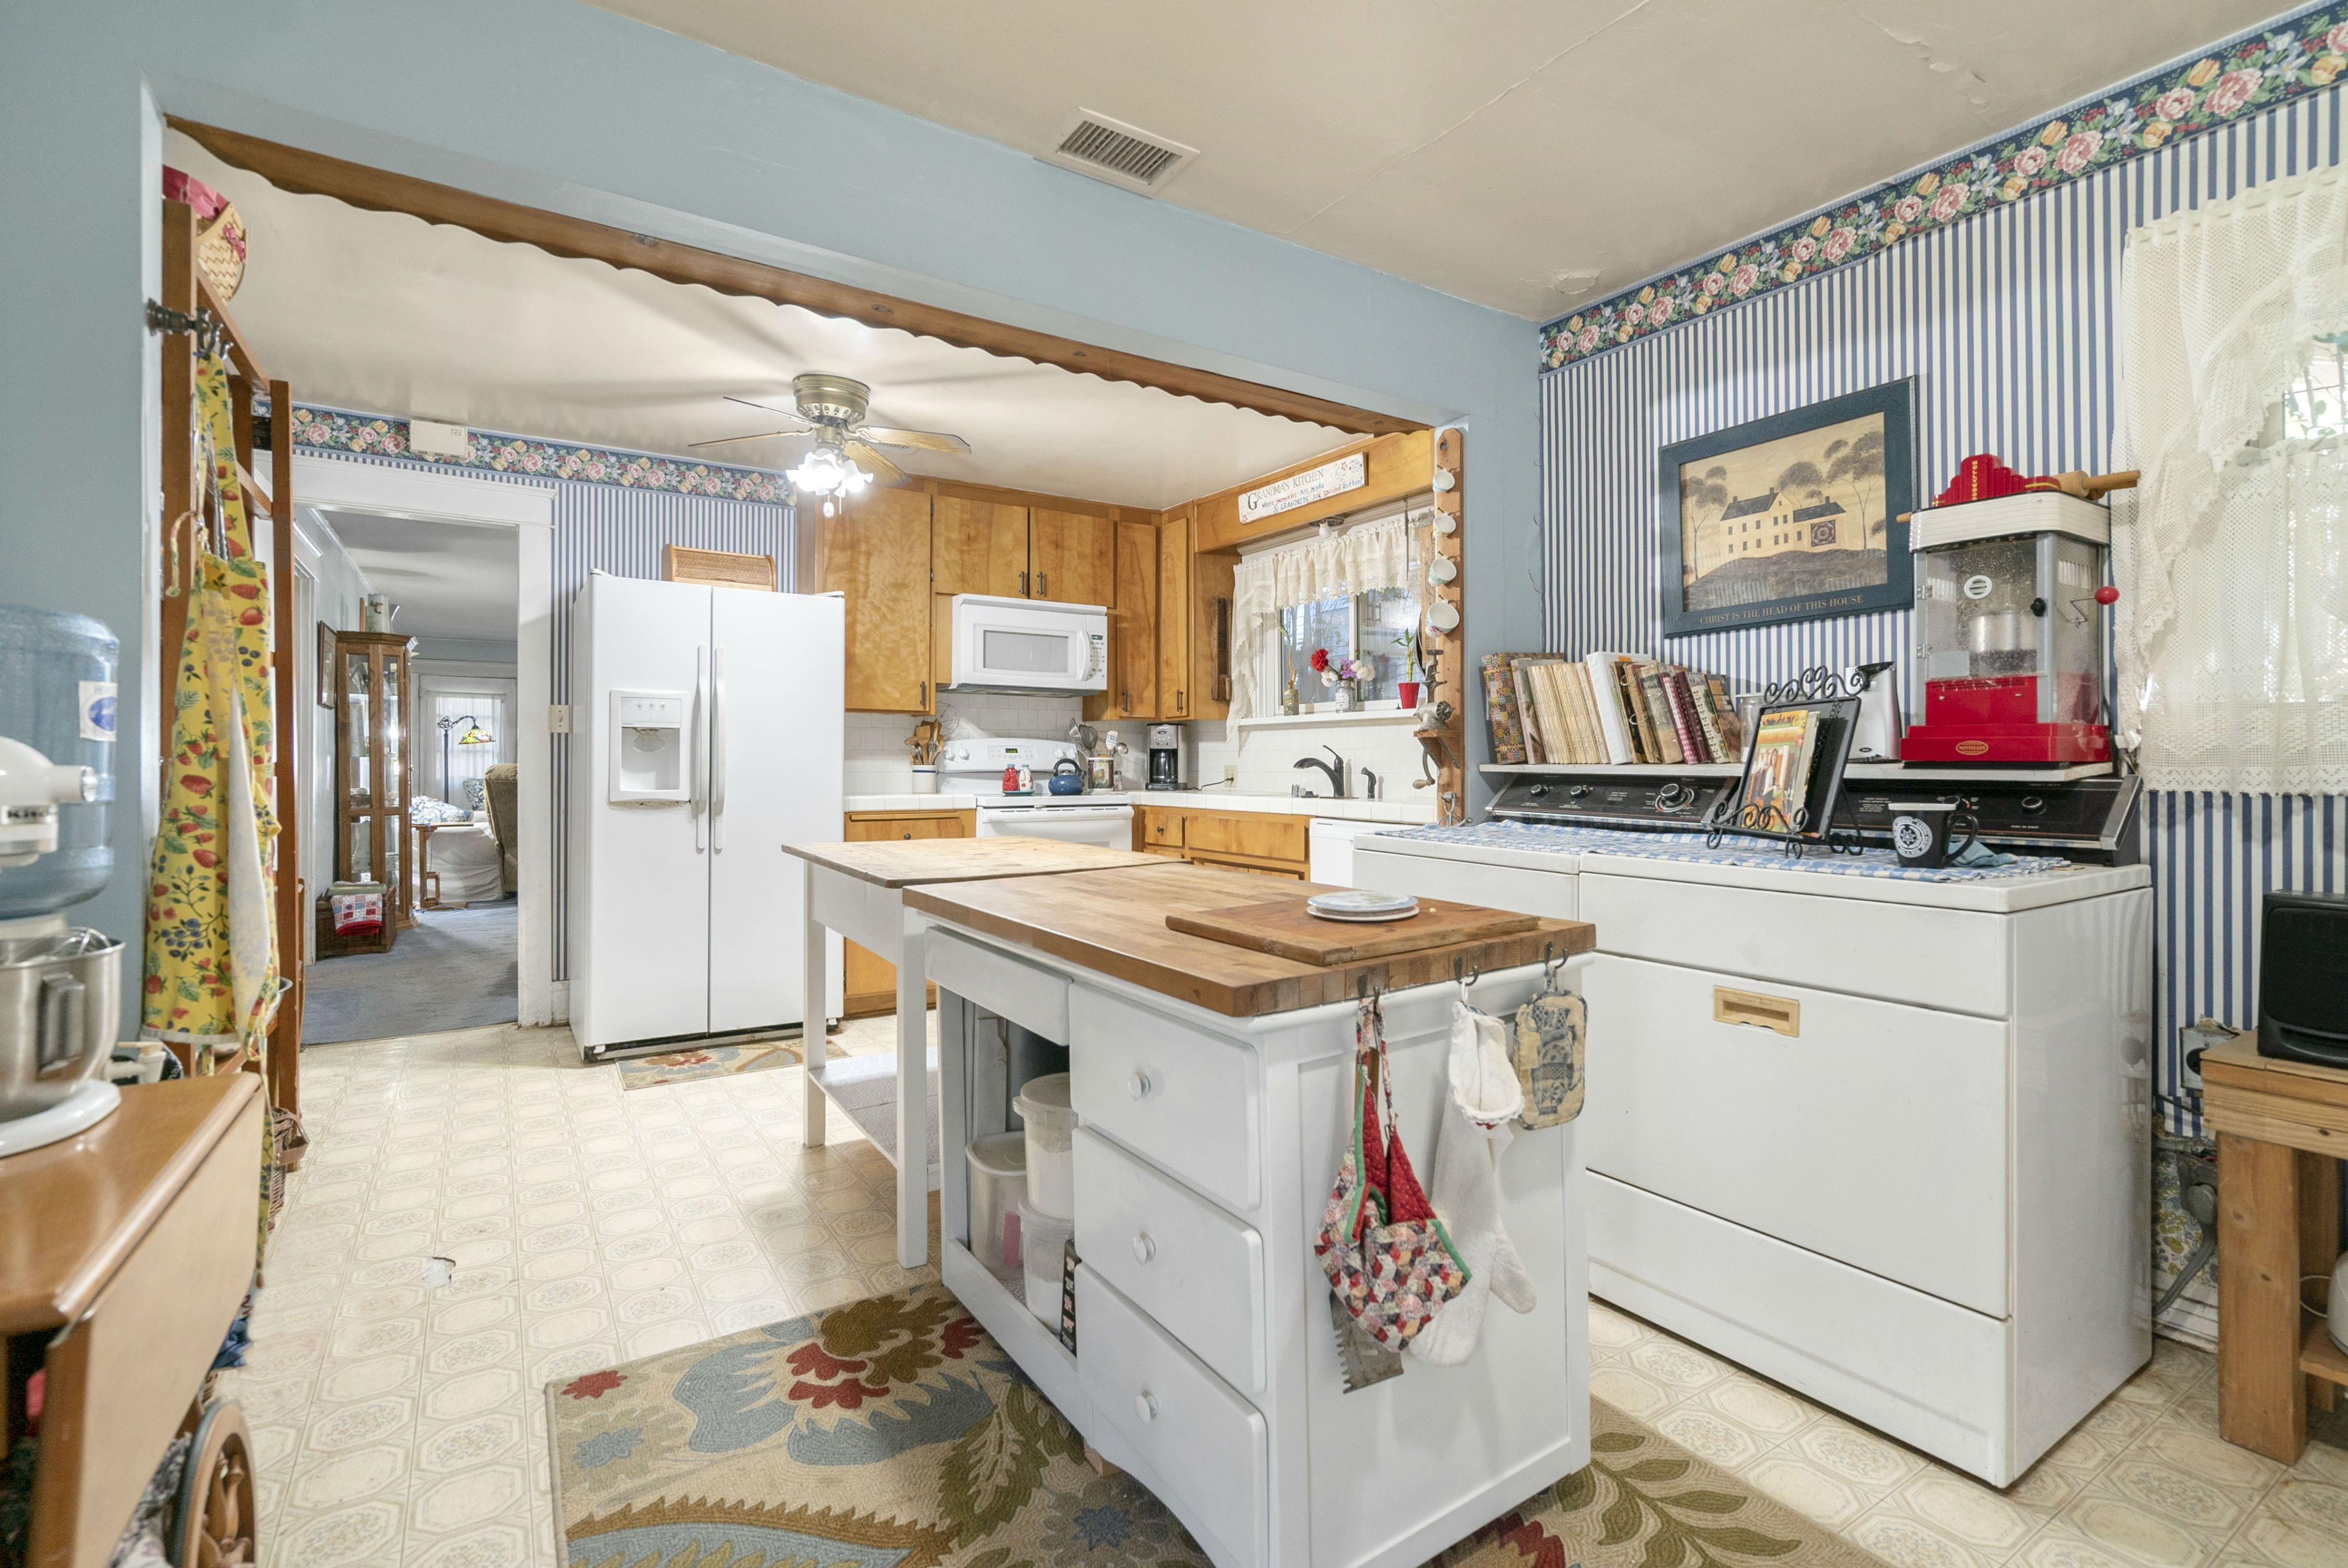 Large kitchen with laundry area, pantry, and space for preparation islands.